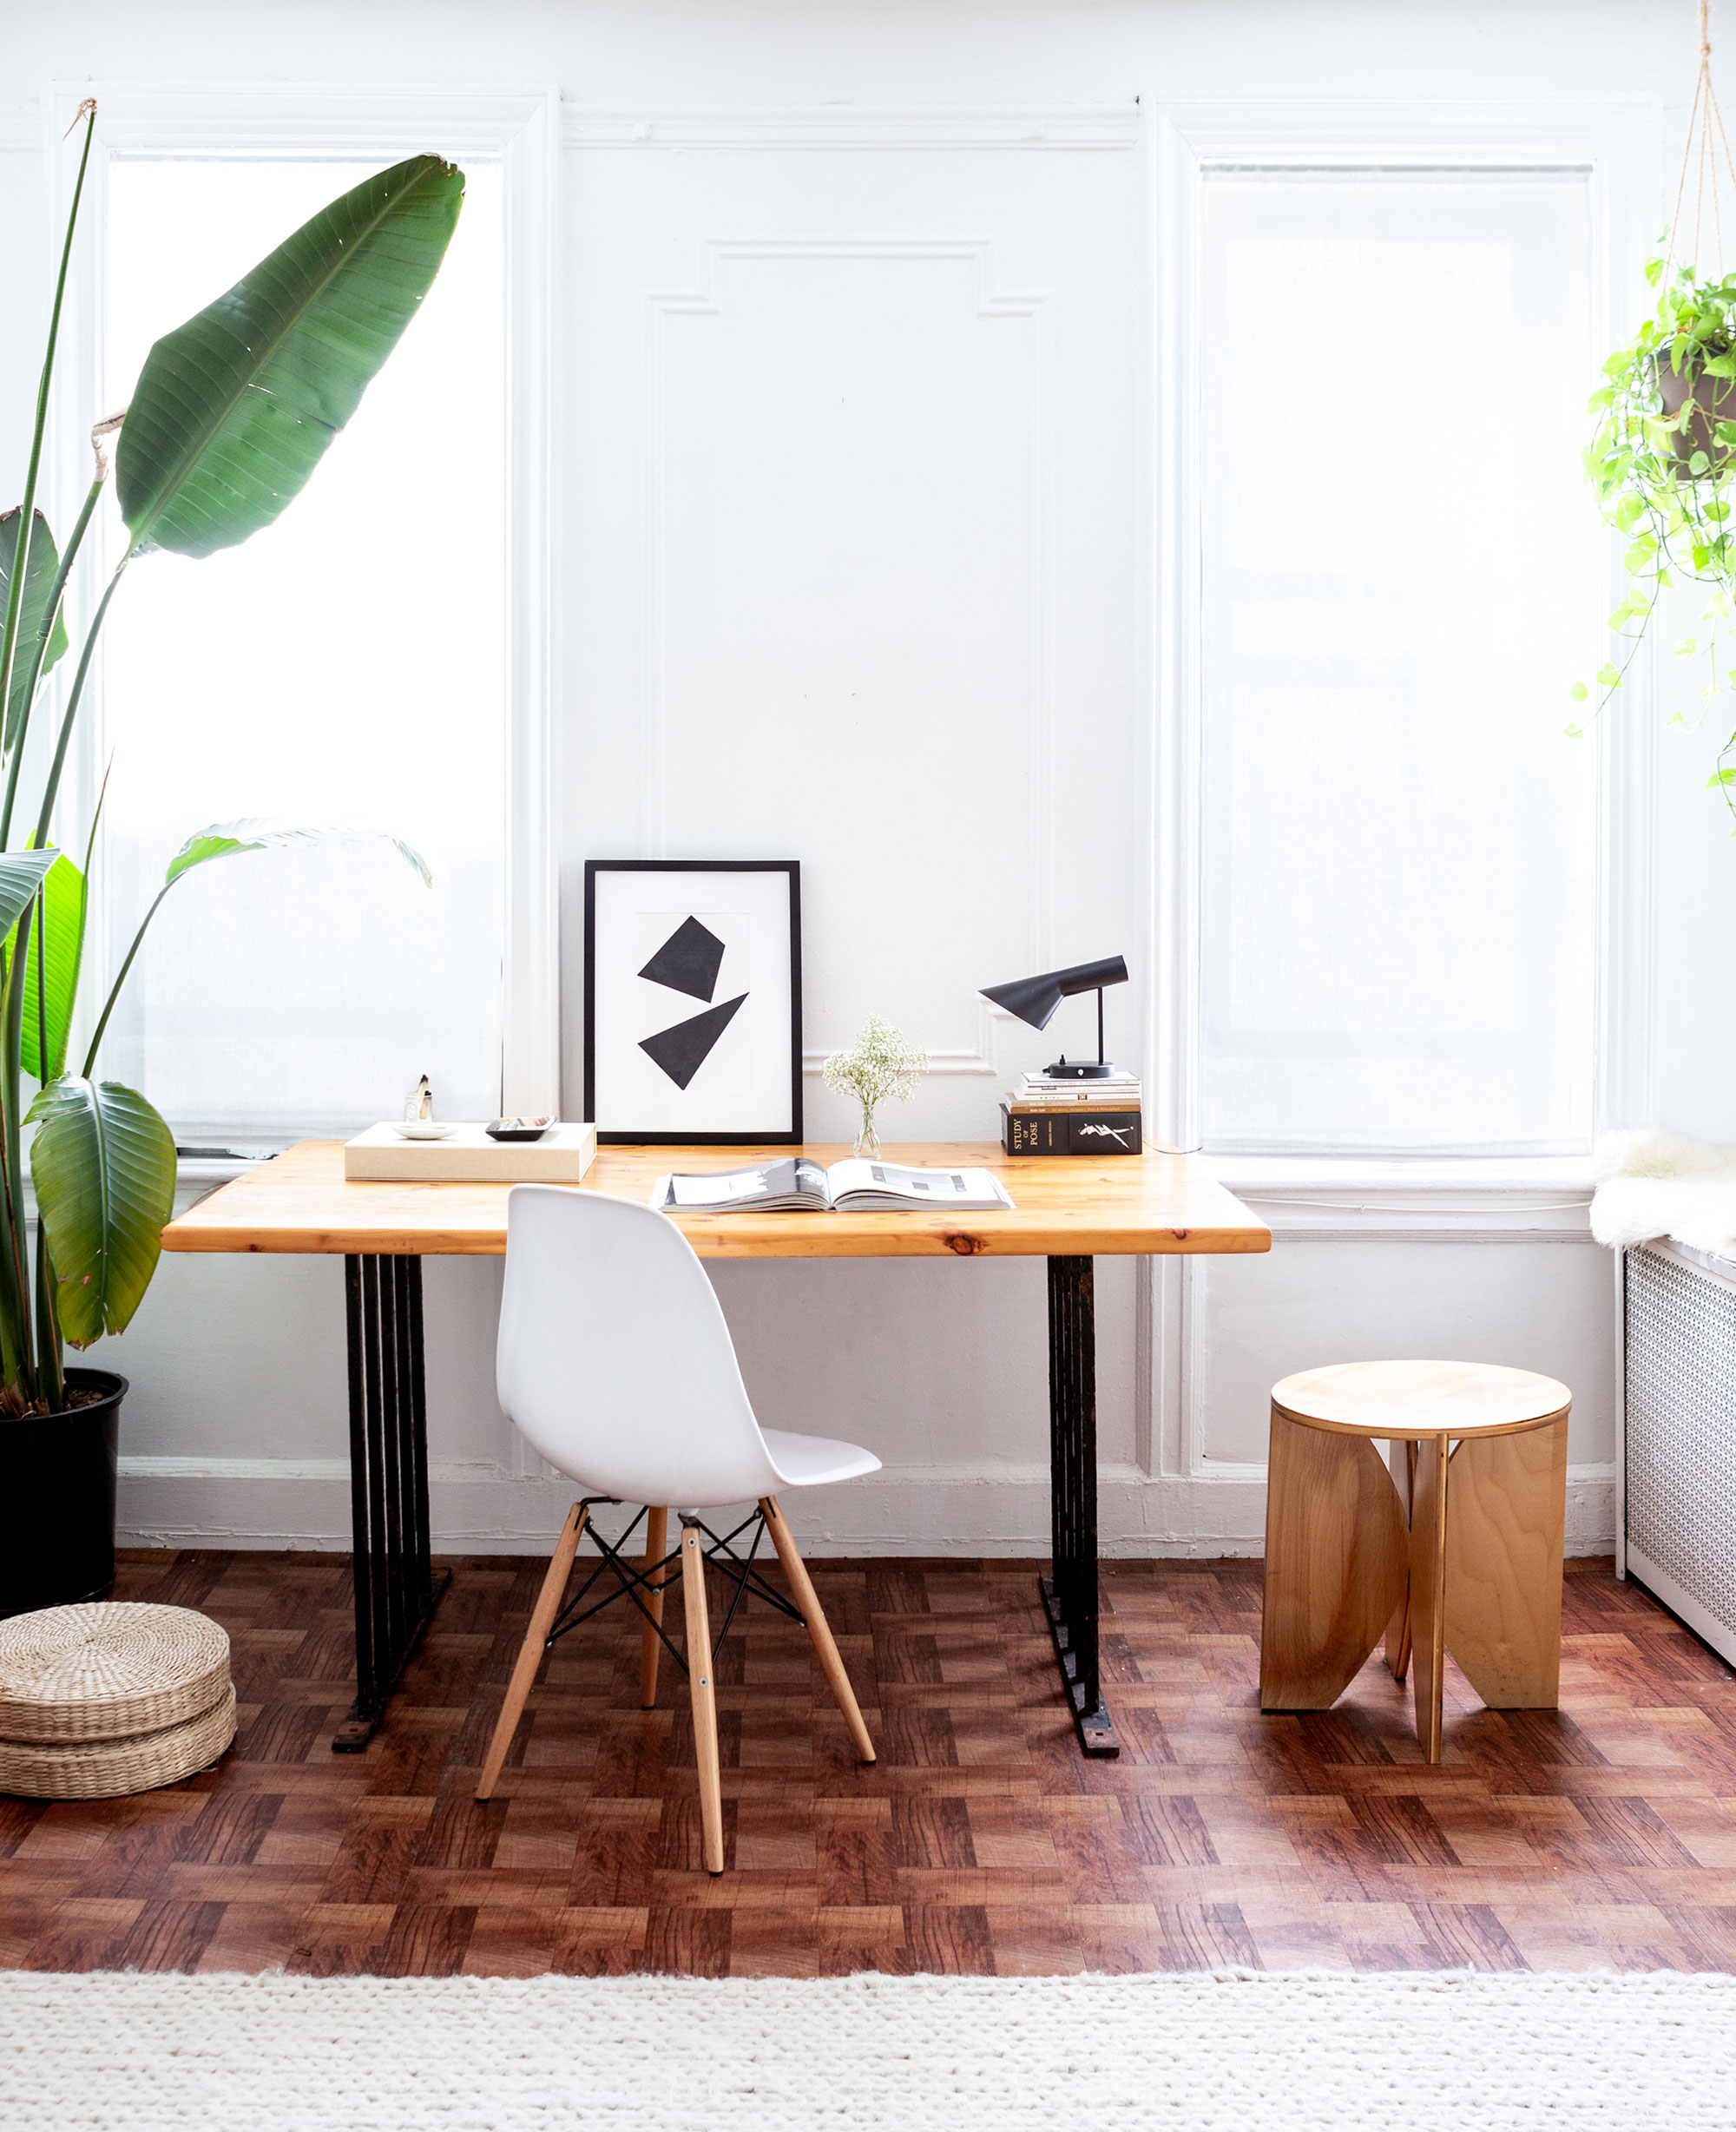 """""""We had Dermot's dad, who's a retired master carpenter, build us a dining table that doubles as a worktable, and the bench and stools that go around it,"""" De Smet mentions, gesturing toward the custom furniture that fills the studio. """"I especially love the bench because it's super versatile; I use it for seating, for props, for anything you can think of. It was important for me to have pieces that are minimal, functional, multipurpose, and beautiful. Kind of like the clothing I make."""""""